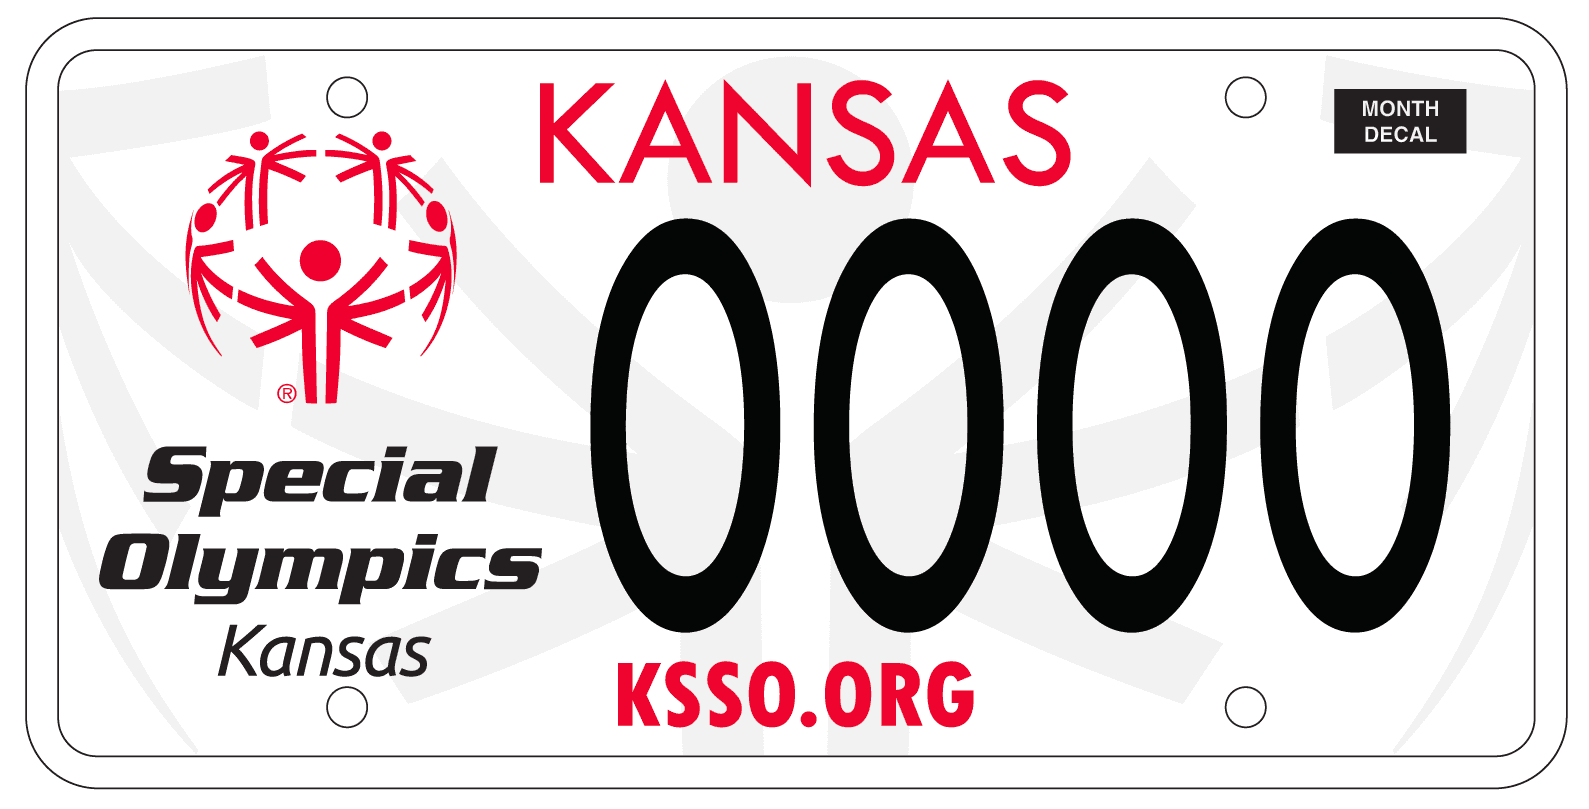 License Plate - Special Olympics